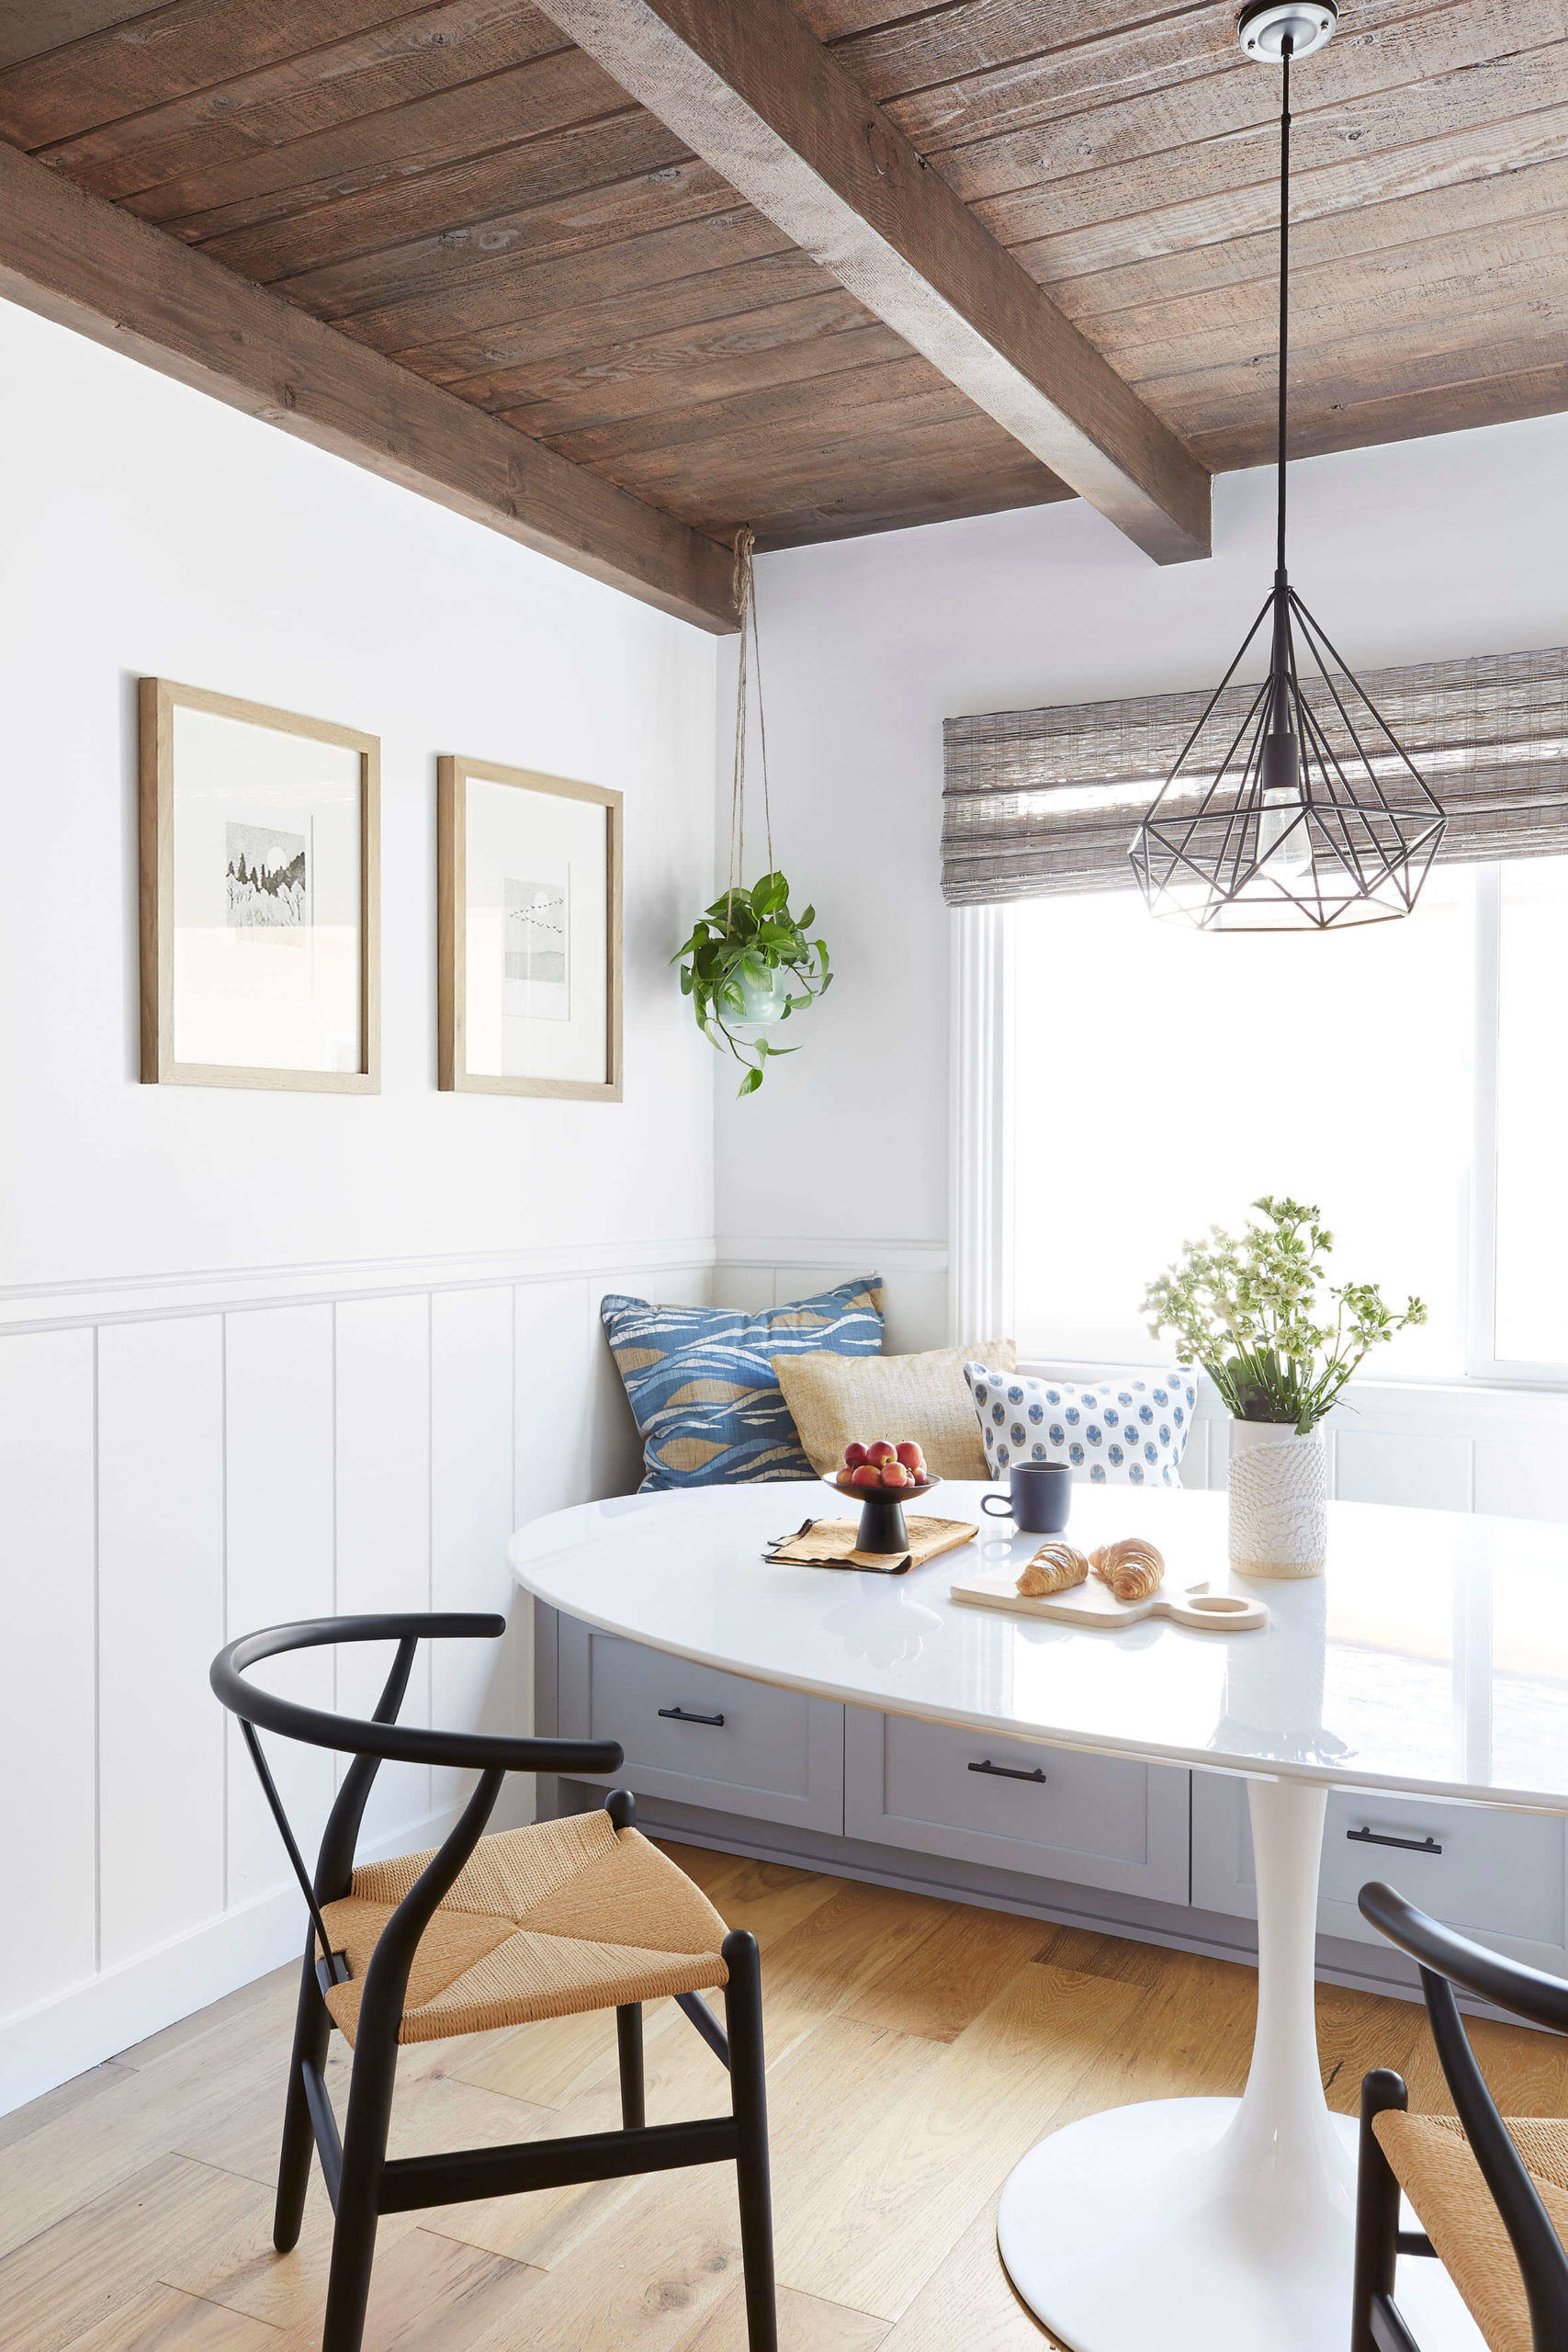 Cozy corner dining nook interior design by Ginny Macdonald Design